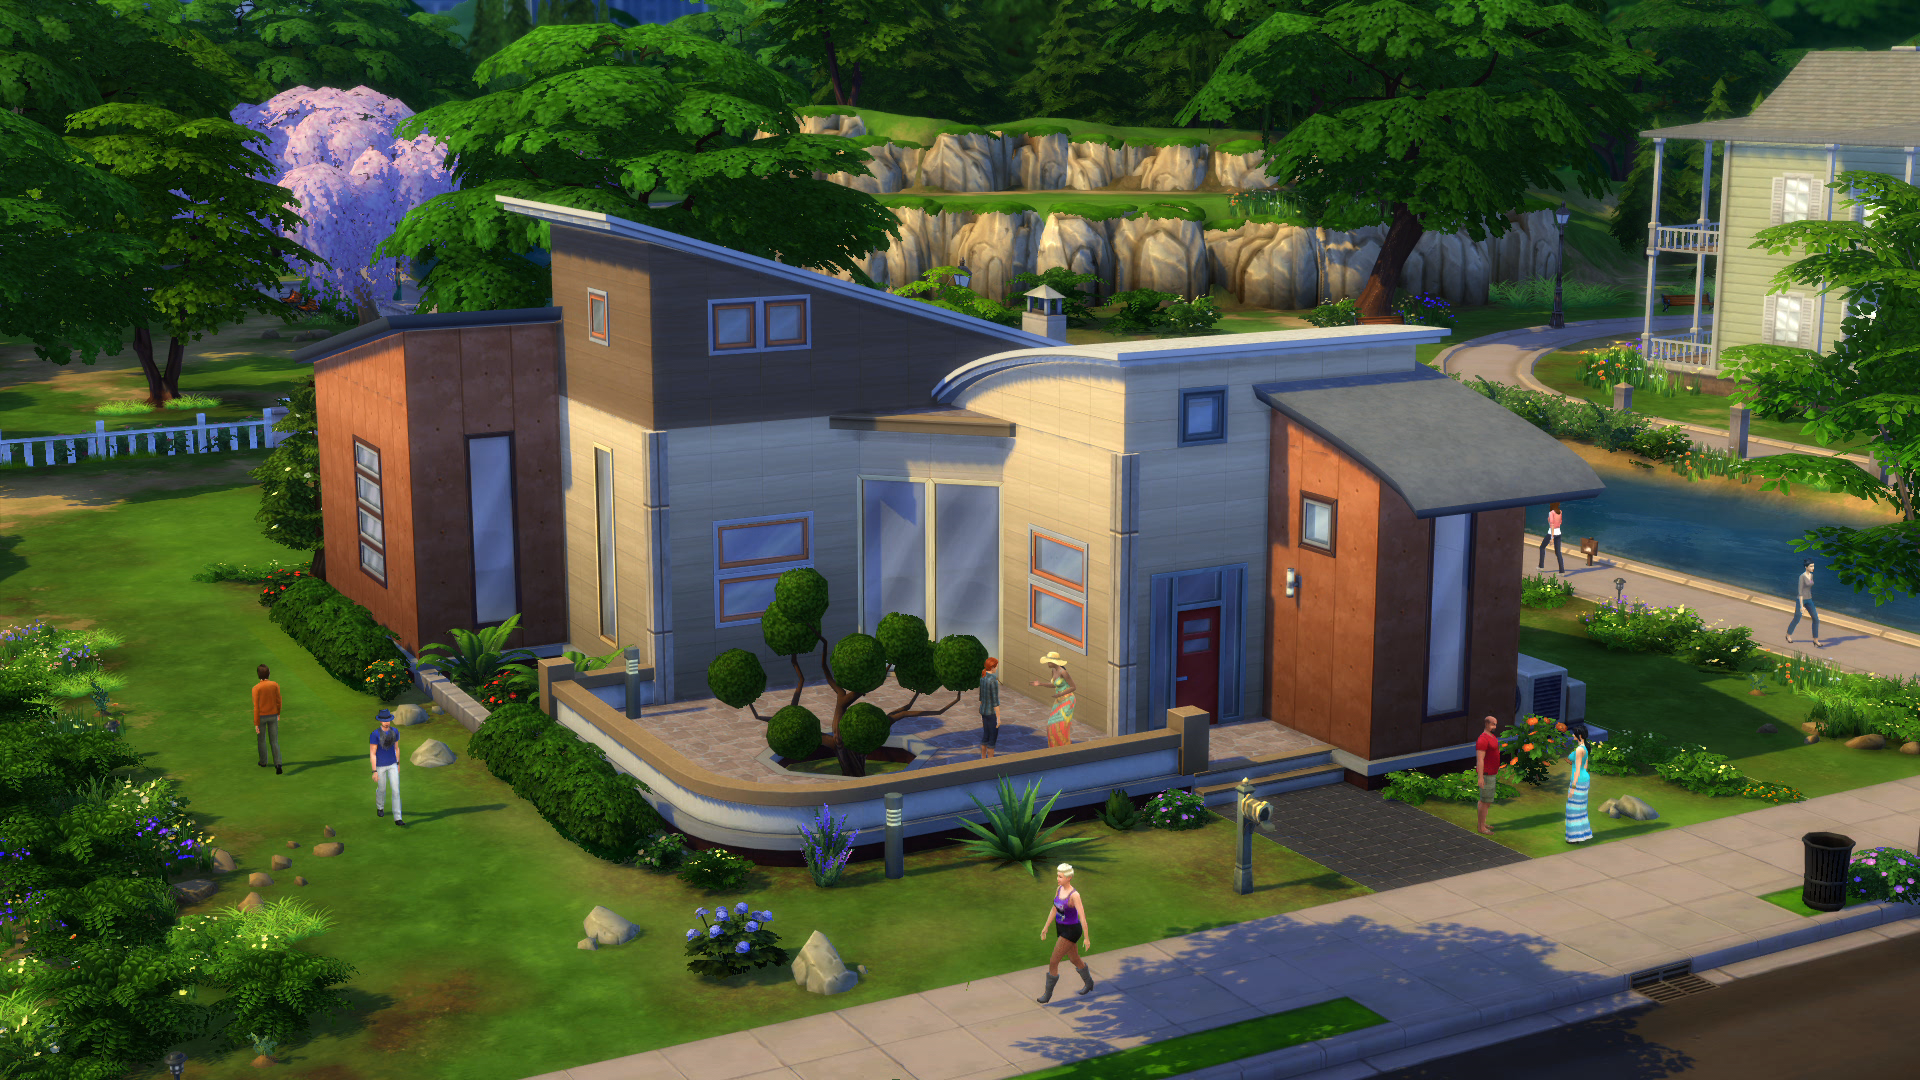 The sims 4 build mode move entire buildings with just a click simcitizens Build my home